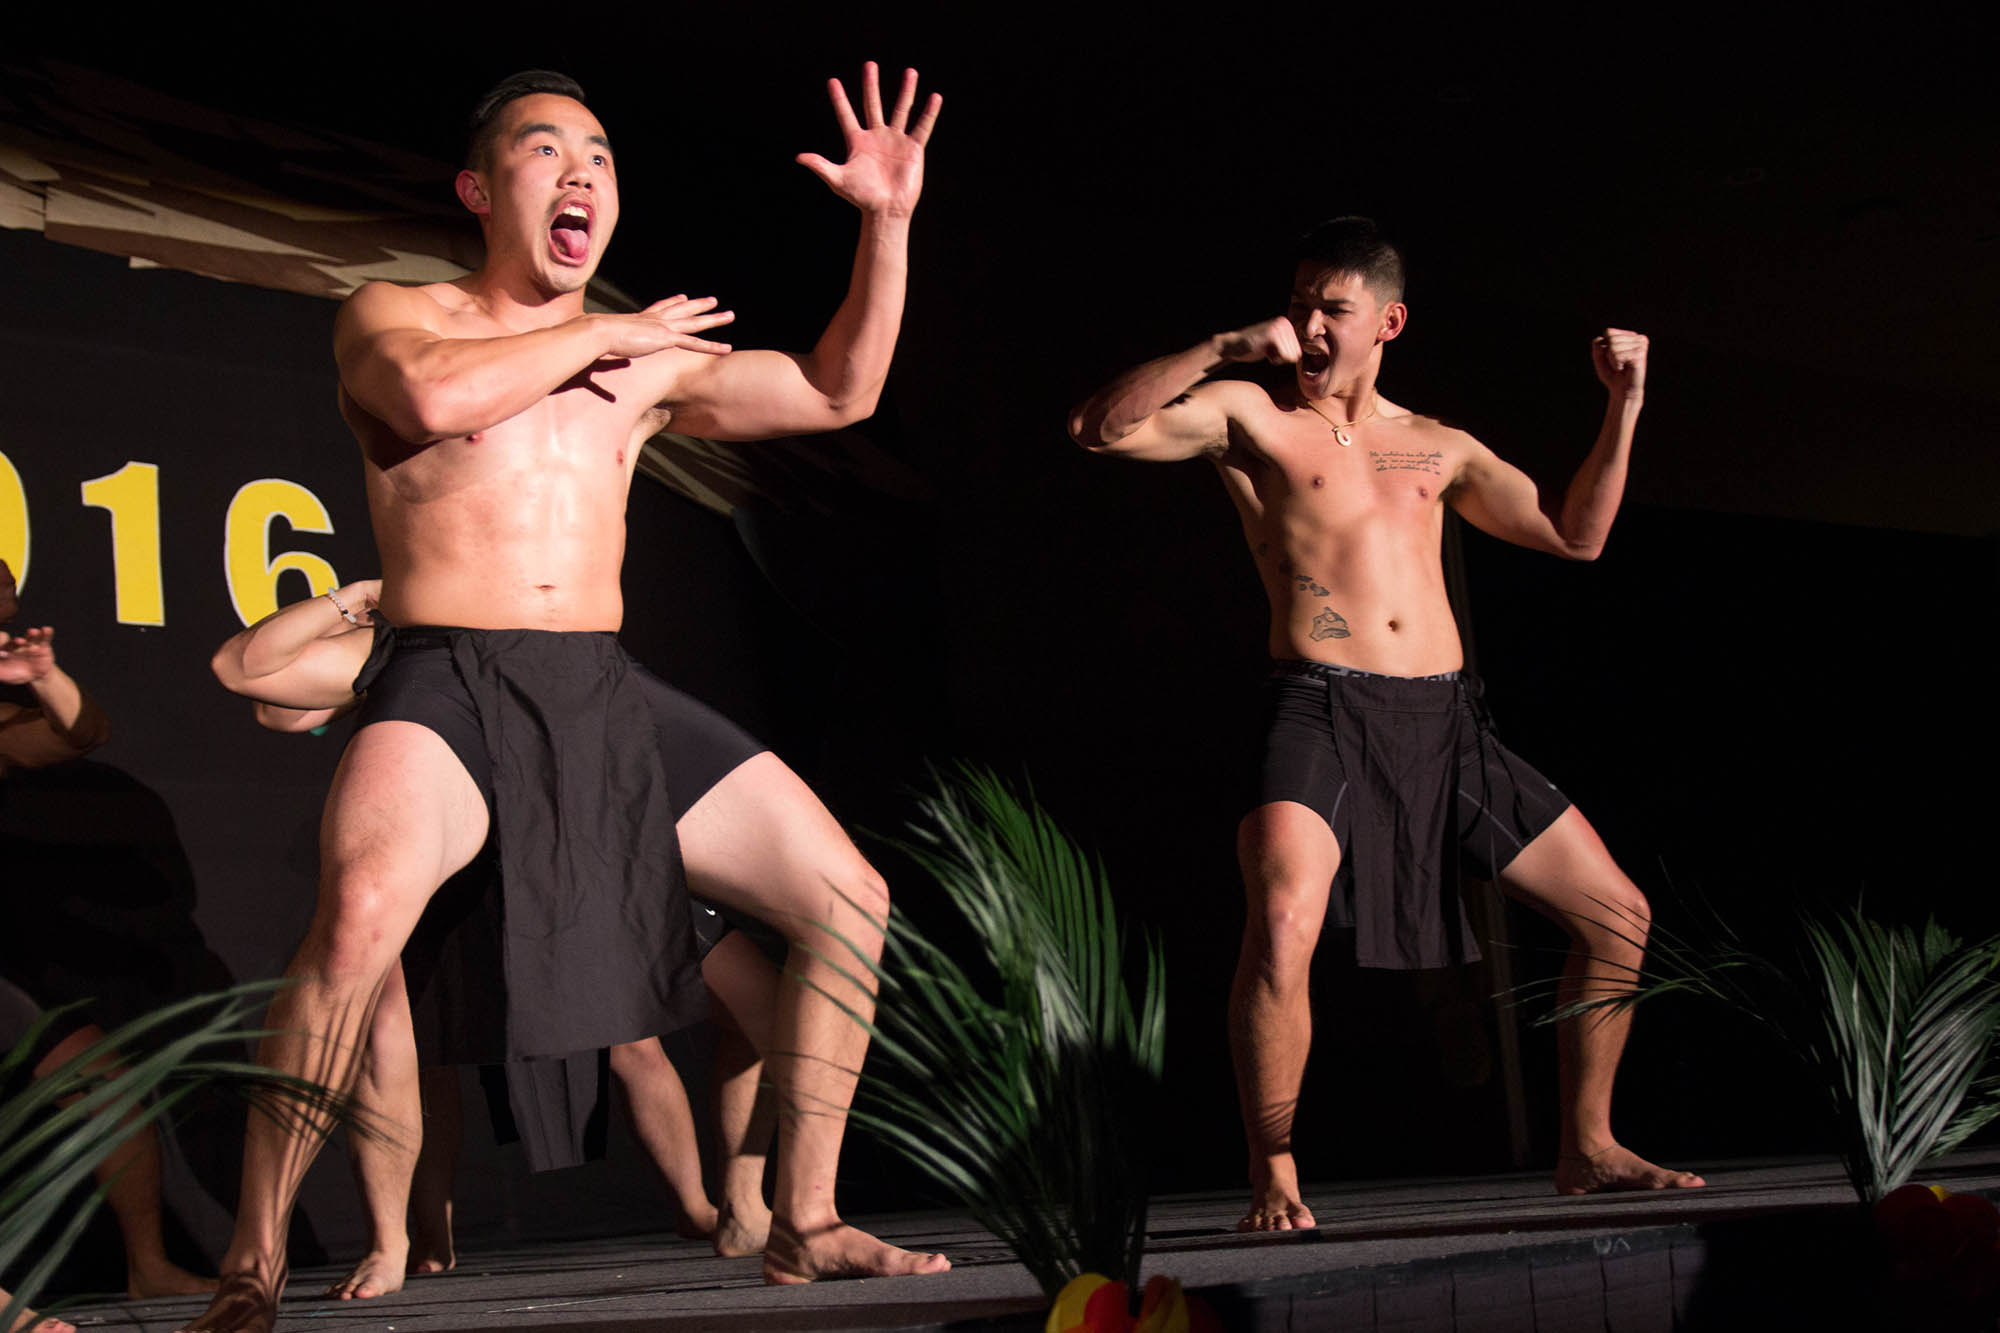 The men perform the Haka, a traditional warrrior dance and a staple of many Pacific Islander cultures